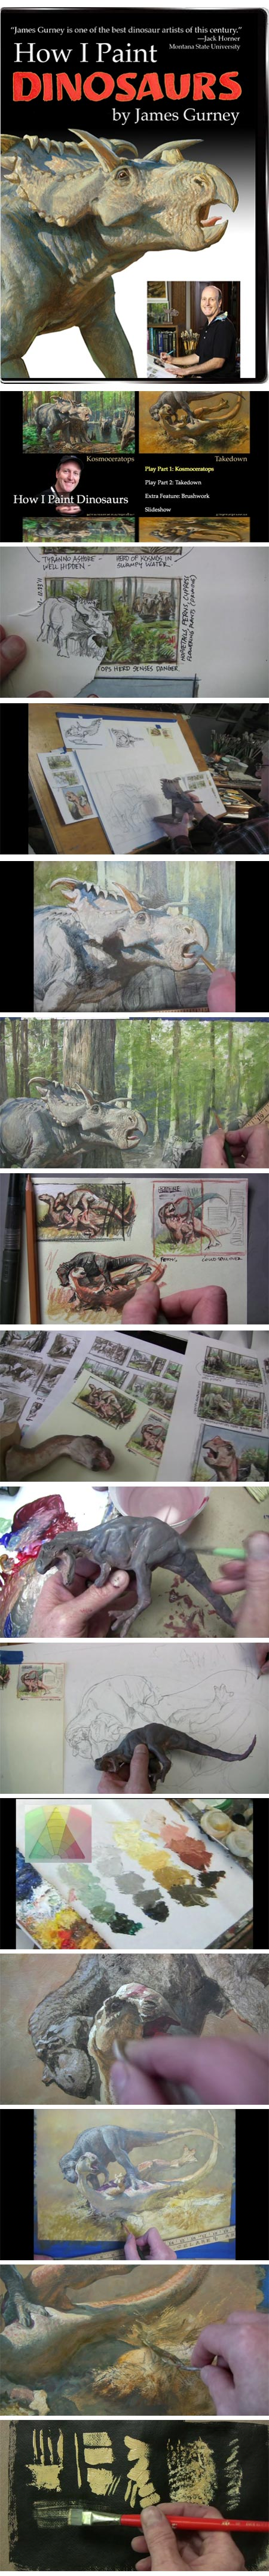 James Gurney's How I paint Dinosaurs